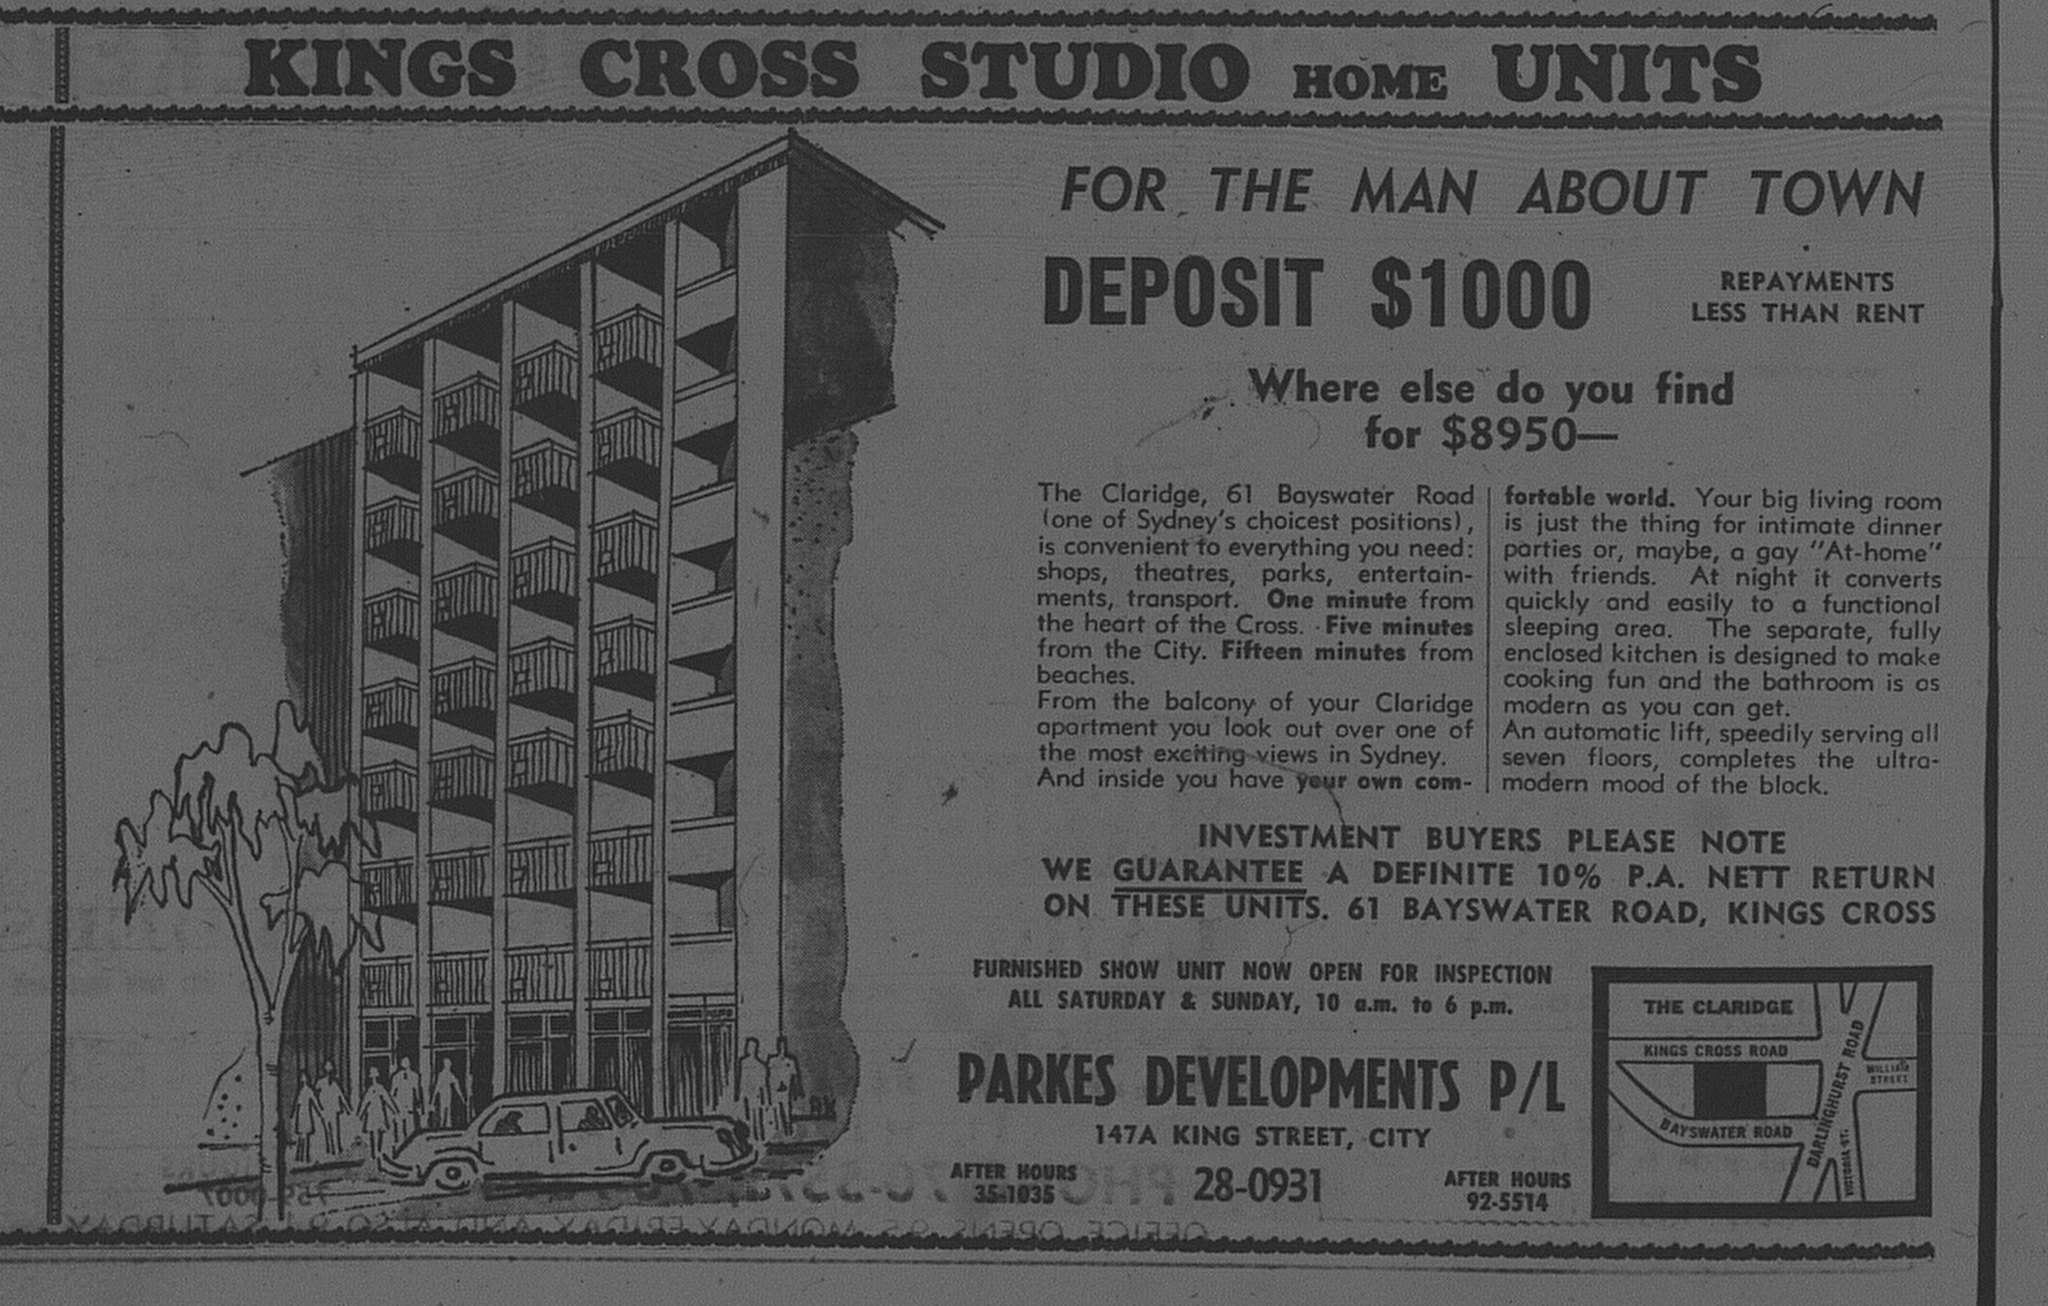 61 Bayswater Road Kings Cross February 24 1966 daily telegraph 24